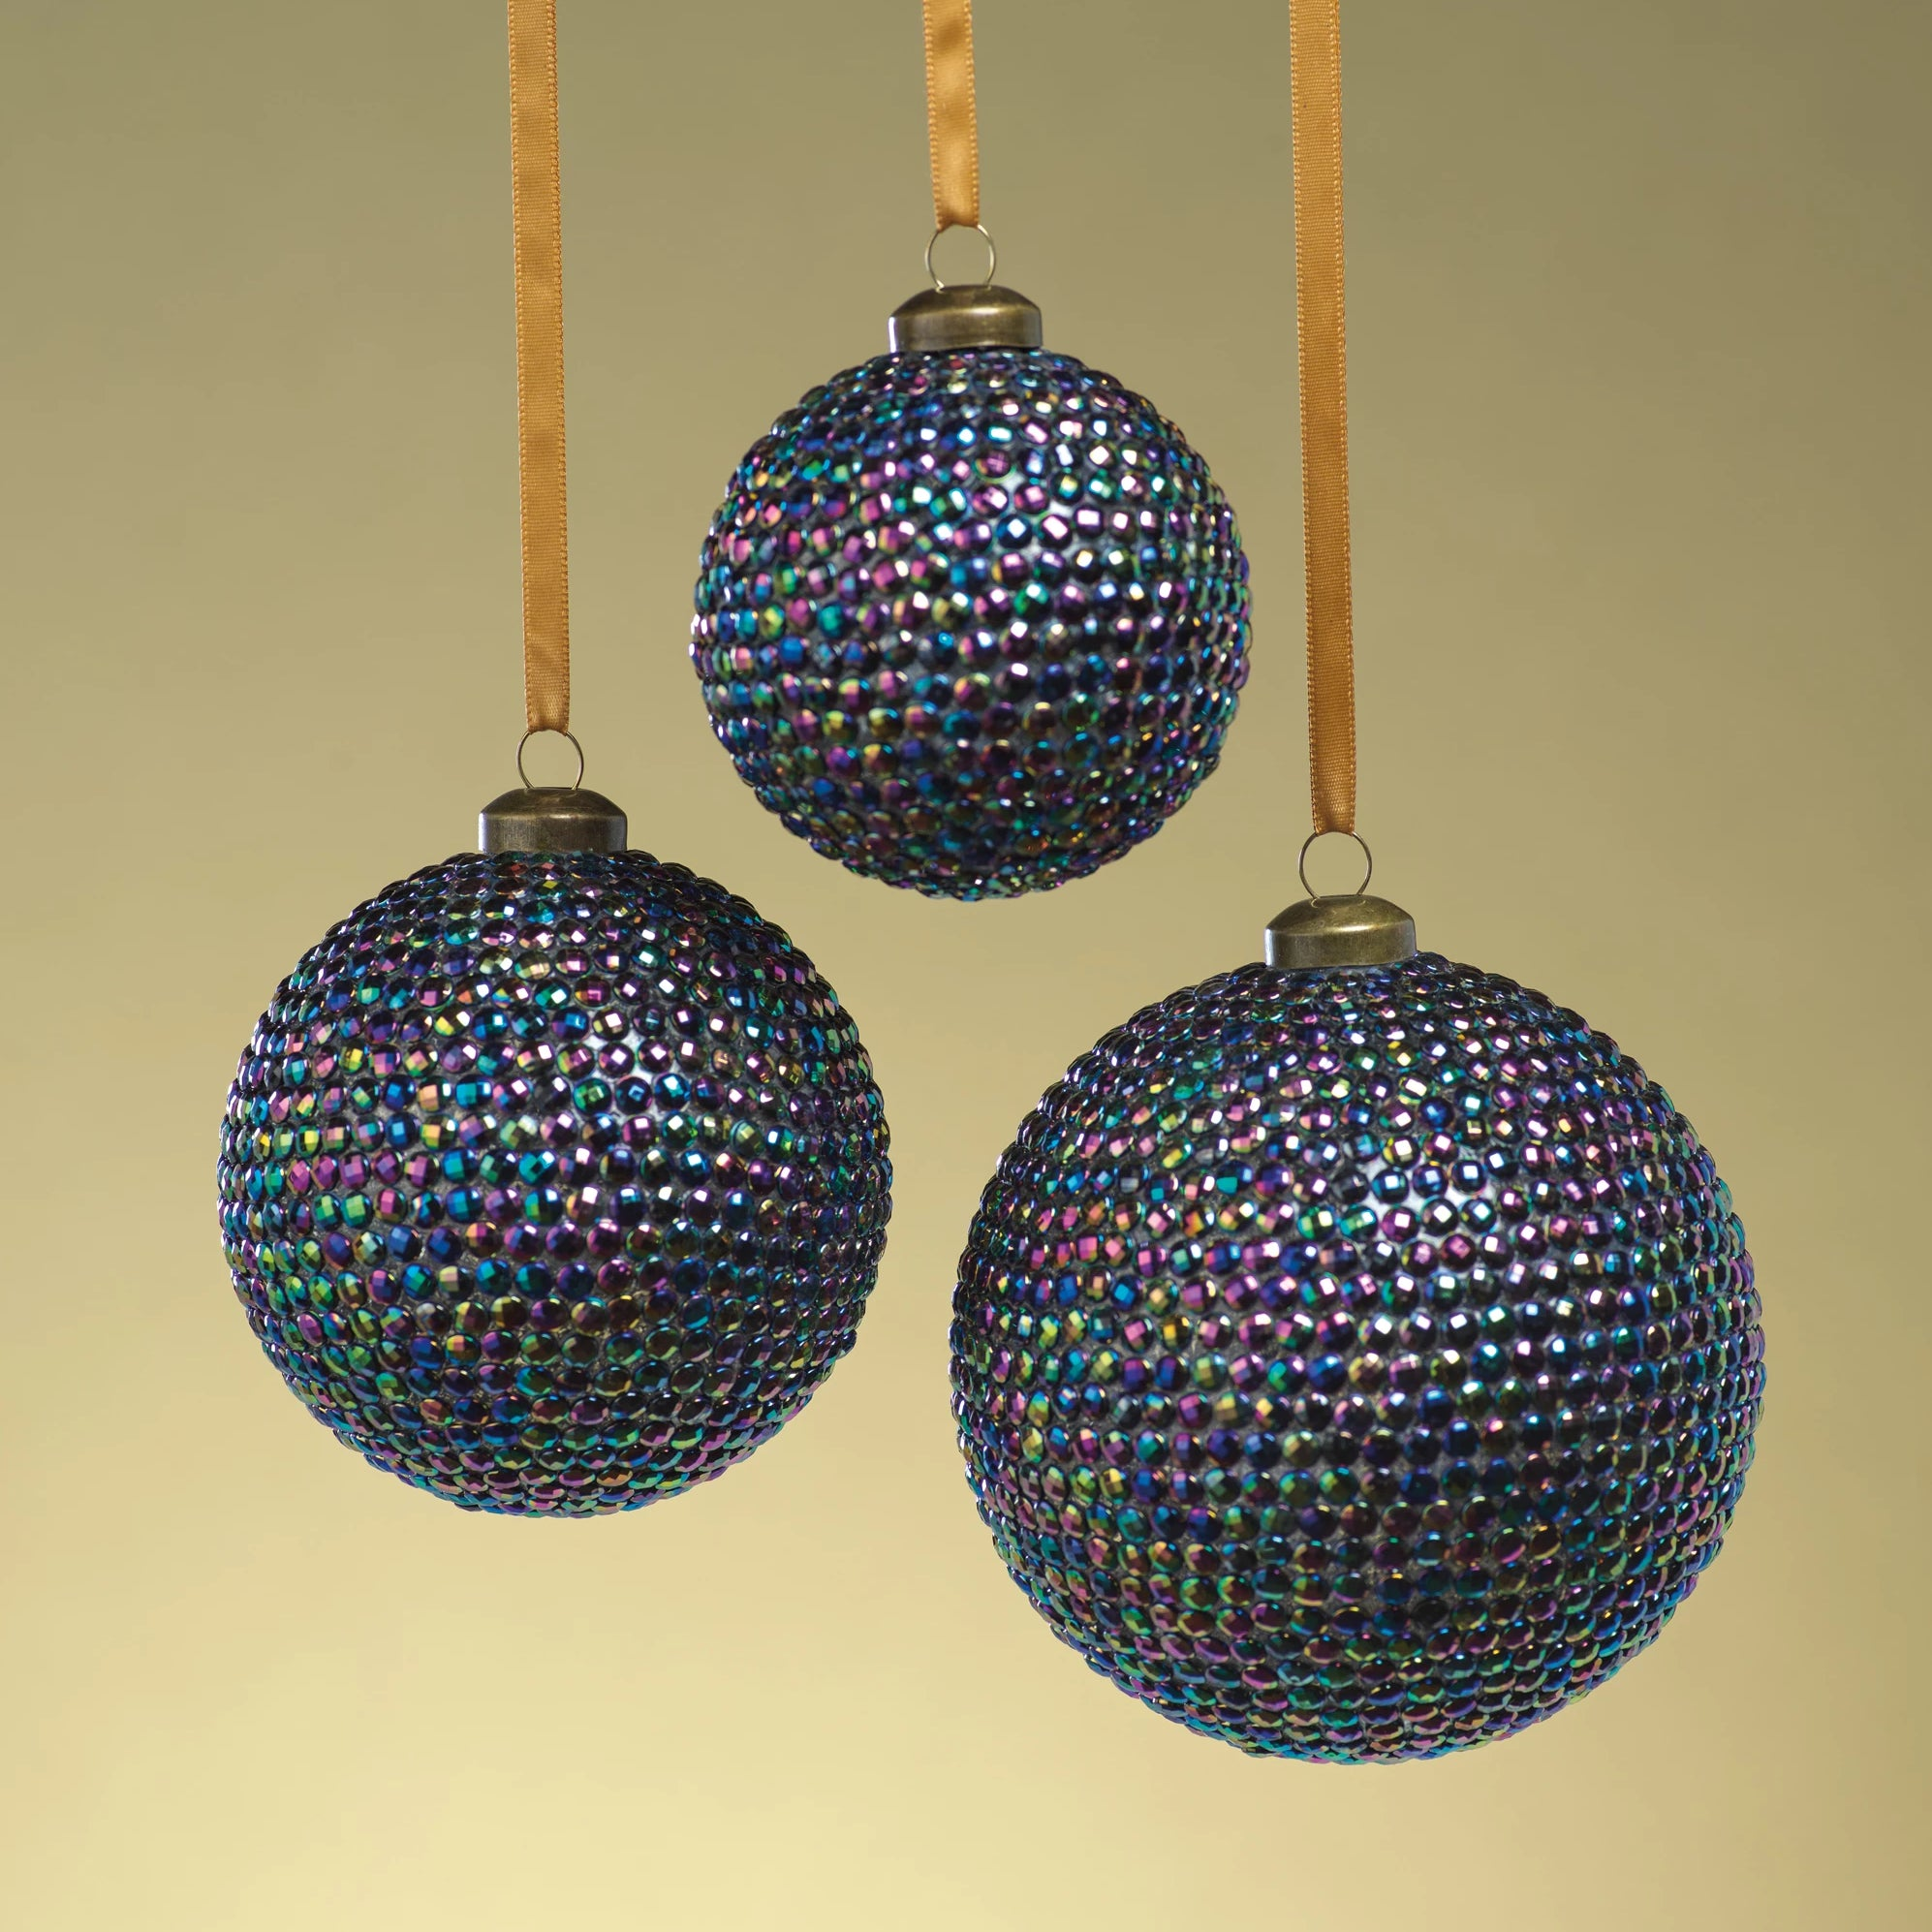 Rainbow Beaded Ornament - CARLYLE AVENUE